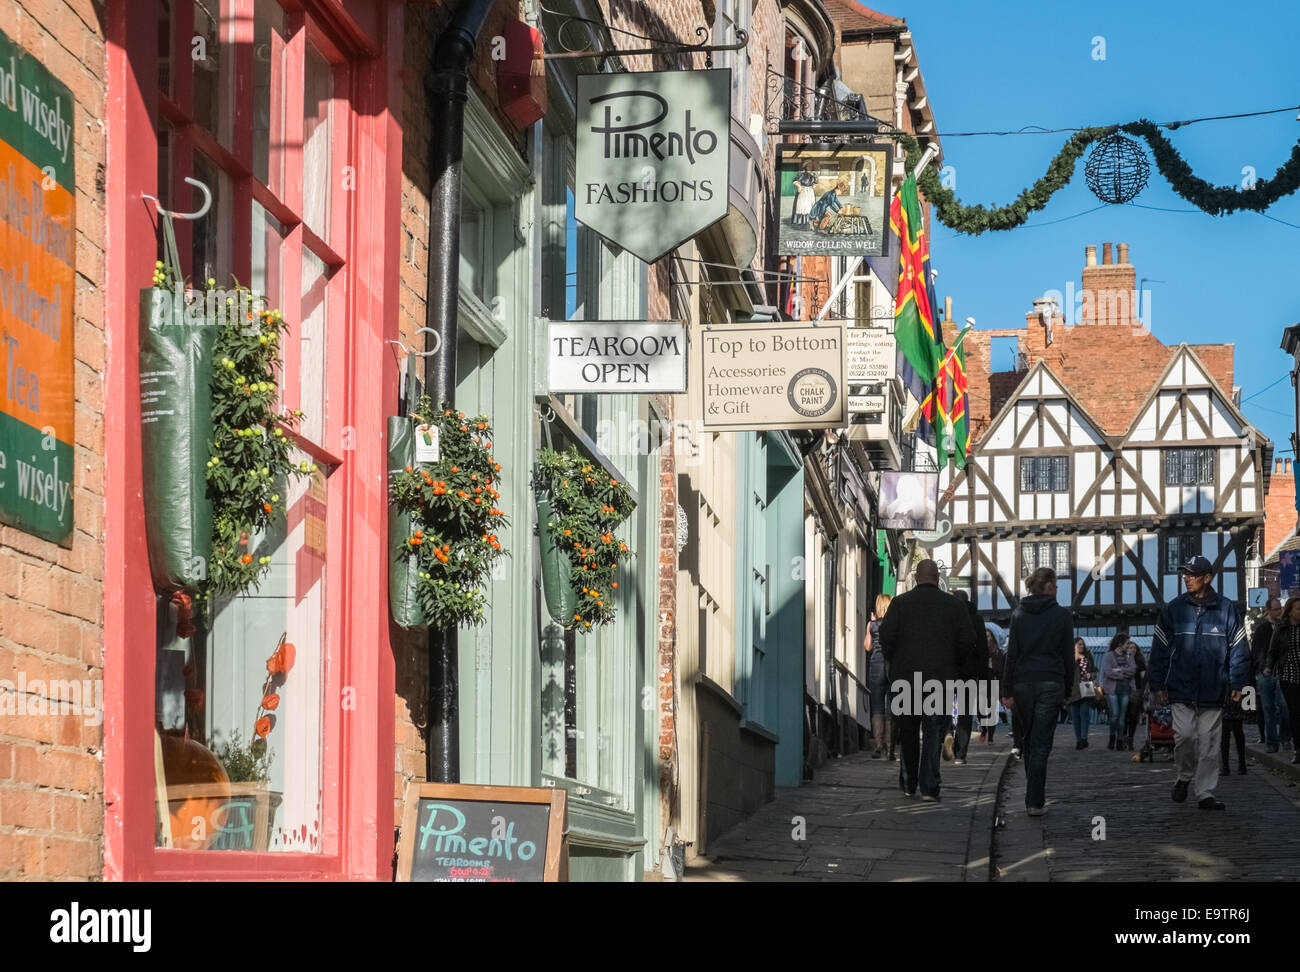 Shop fronts and shoppers on Steep Hill, Lincoln, Lincolnshire, UK - Stock Image